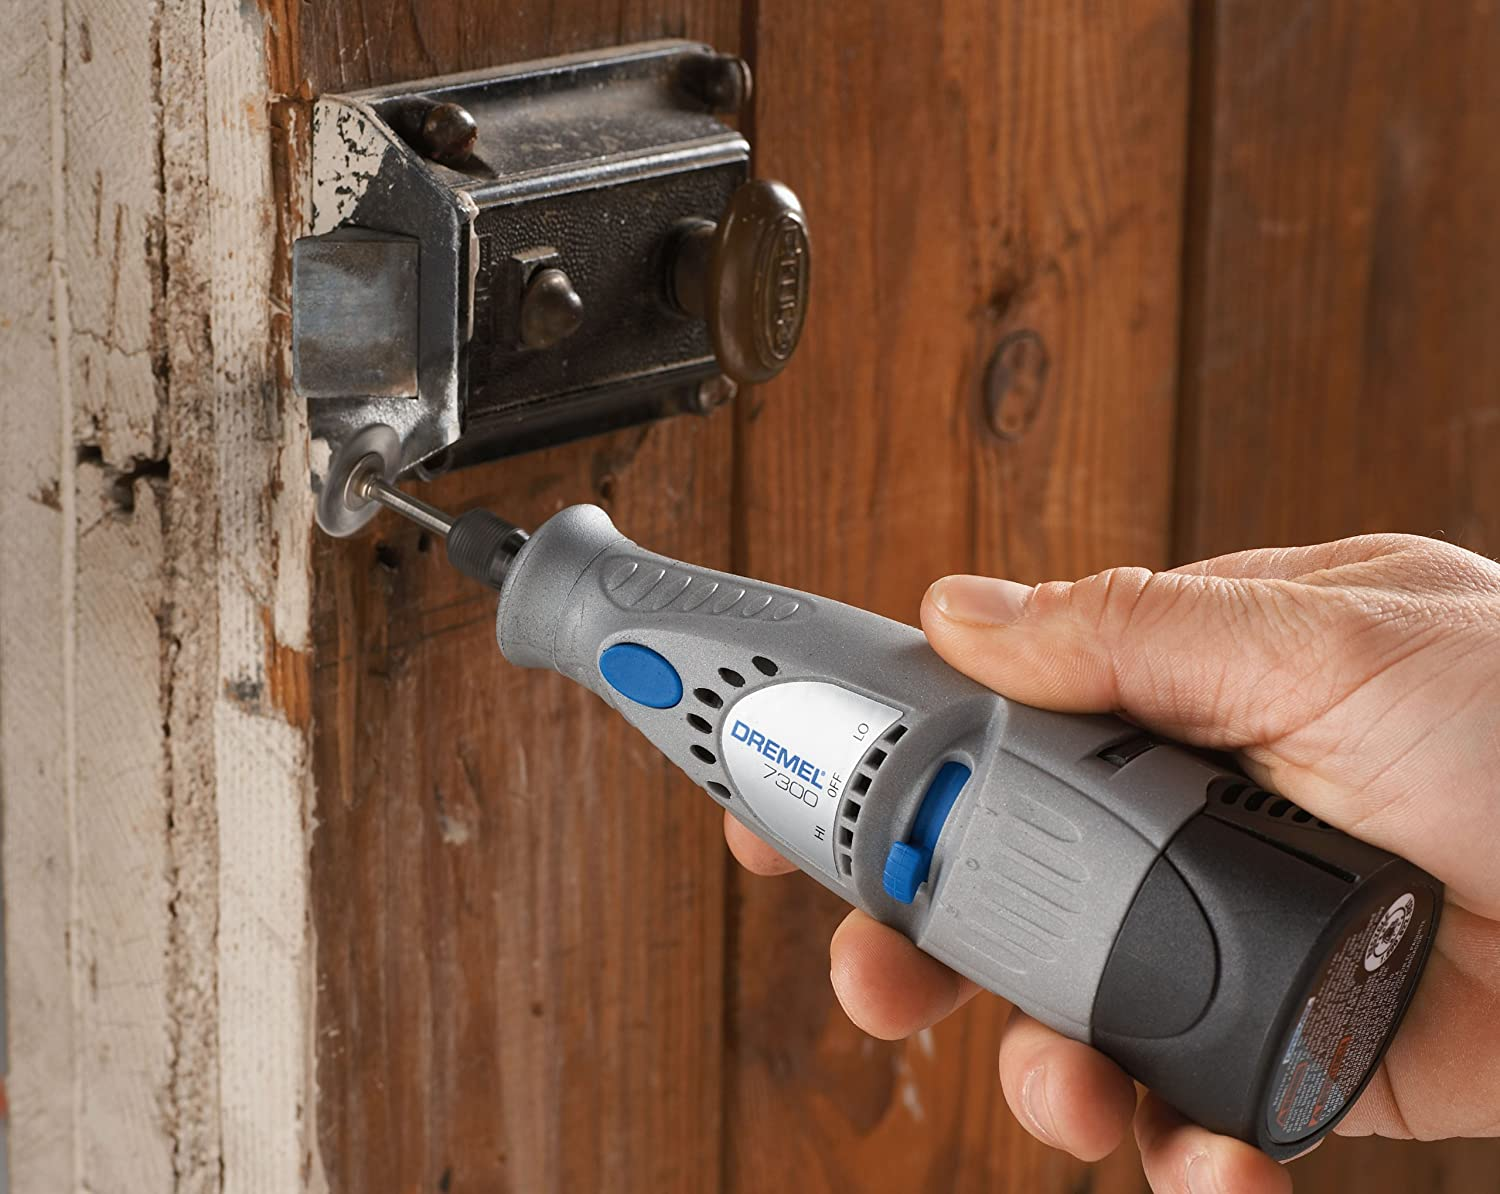 Dremel 7300-N/8 MiniMite 4.8-Volt Cordless Two-Speed Rotary Tool Review